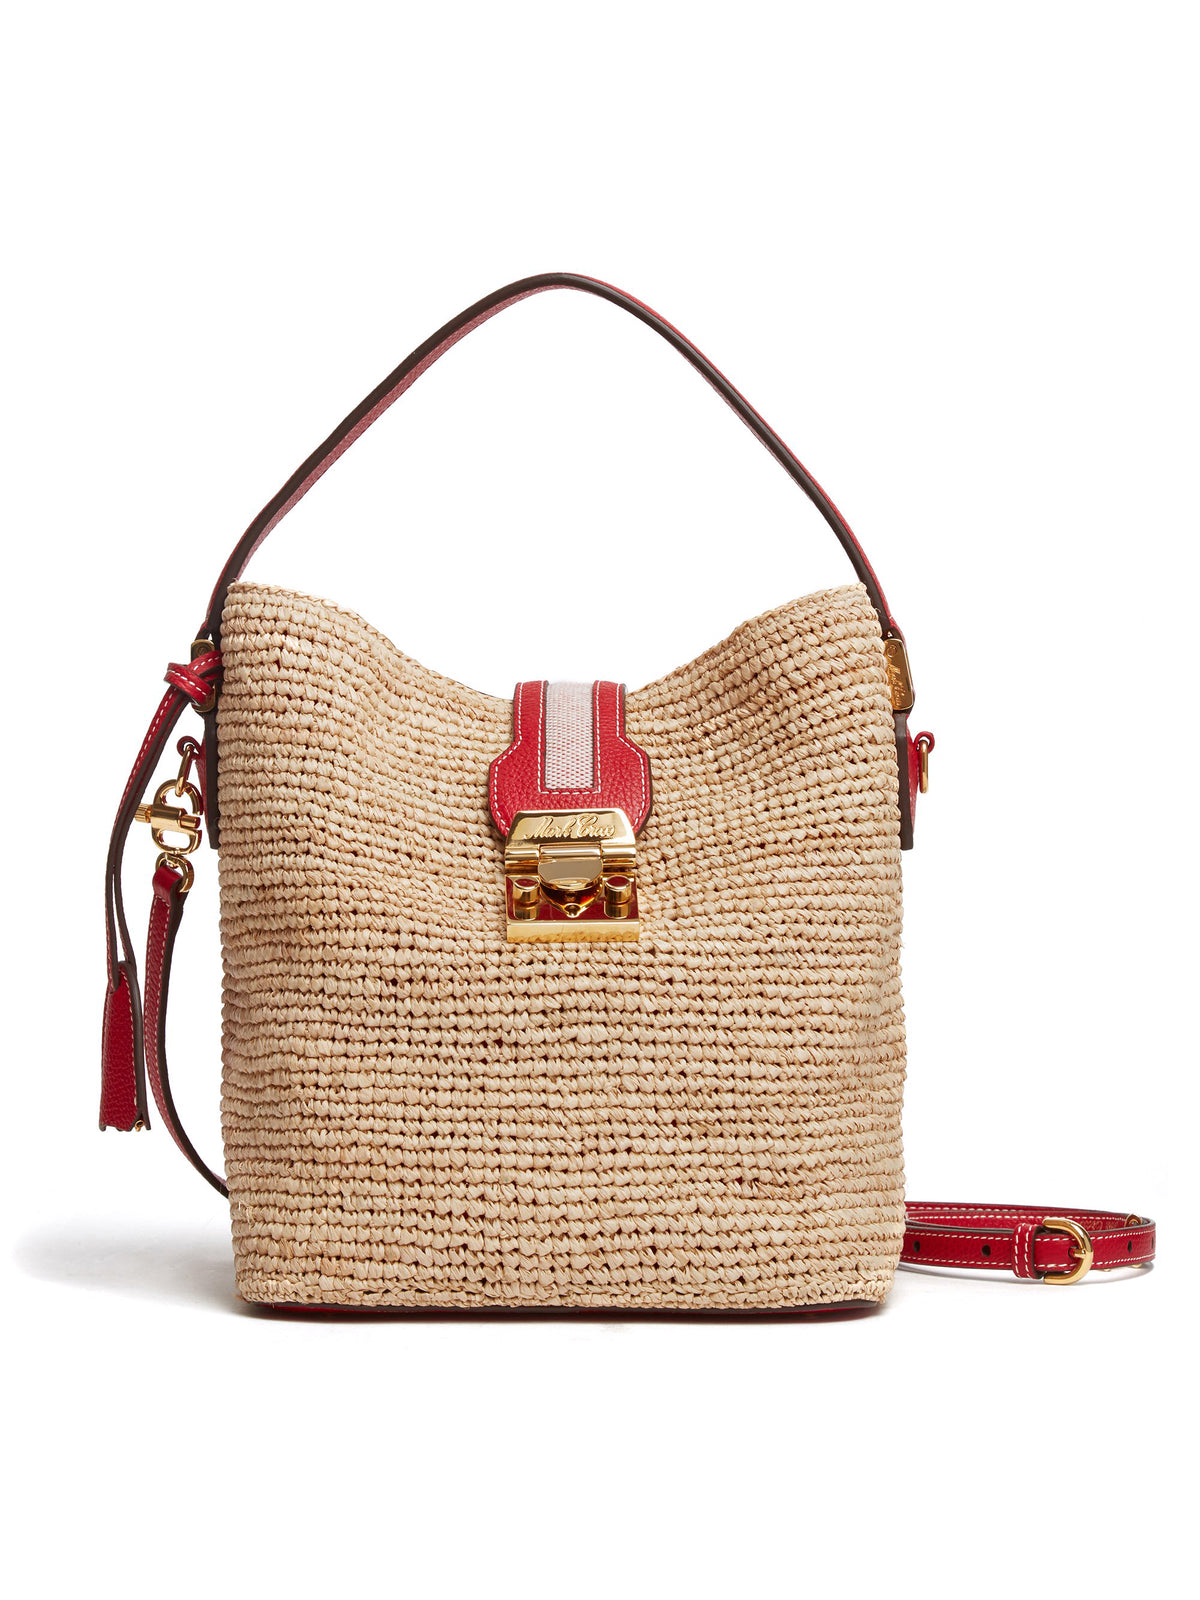 Mark Cross Murphy Raffia & Leather Bucket Bag Tumbled Grain Mc Red / Birdseye / Natural Raffia Front